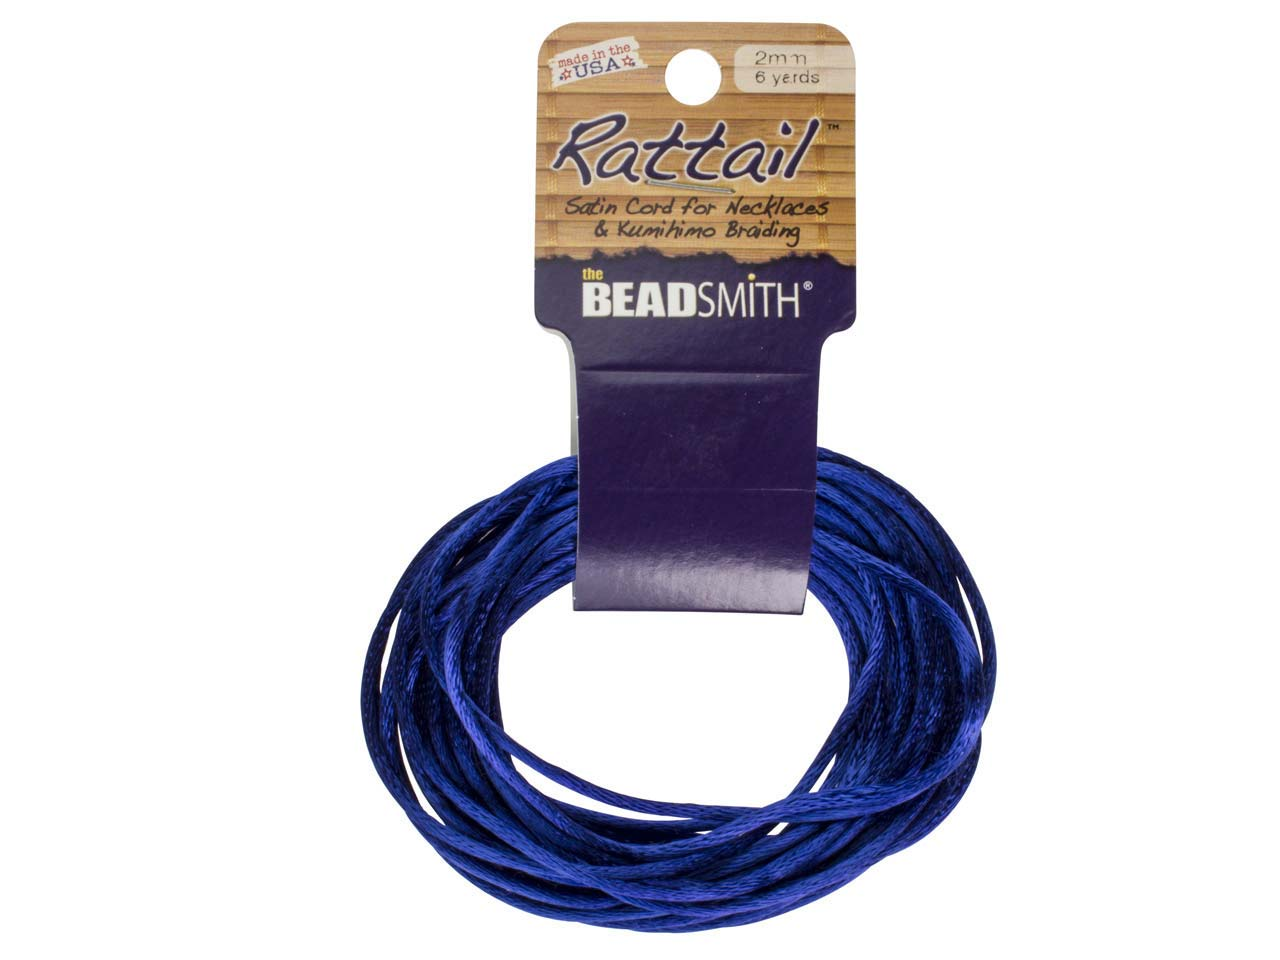 Beadsmith Rattail Satin Cord Royal Blue 2mm X 5m